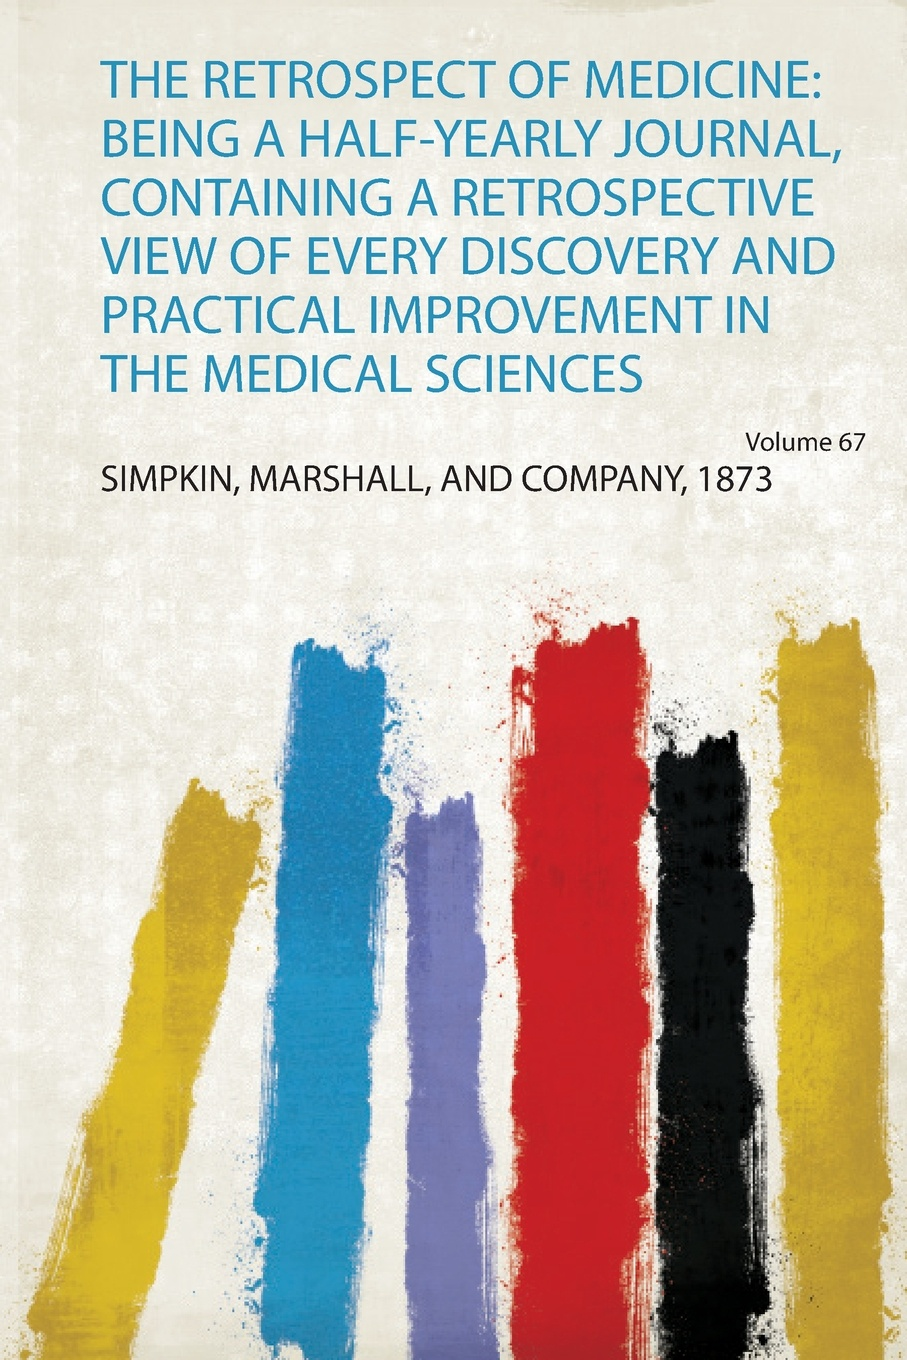 Simpkin Marshall and Company The Retrospect of Medicine. Being a Half-Yearly Journal, Containing a Retrospective View of Every Discovery and Practical Improvement in the Medical Sciences